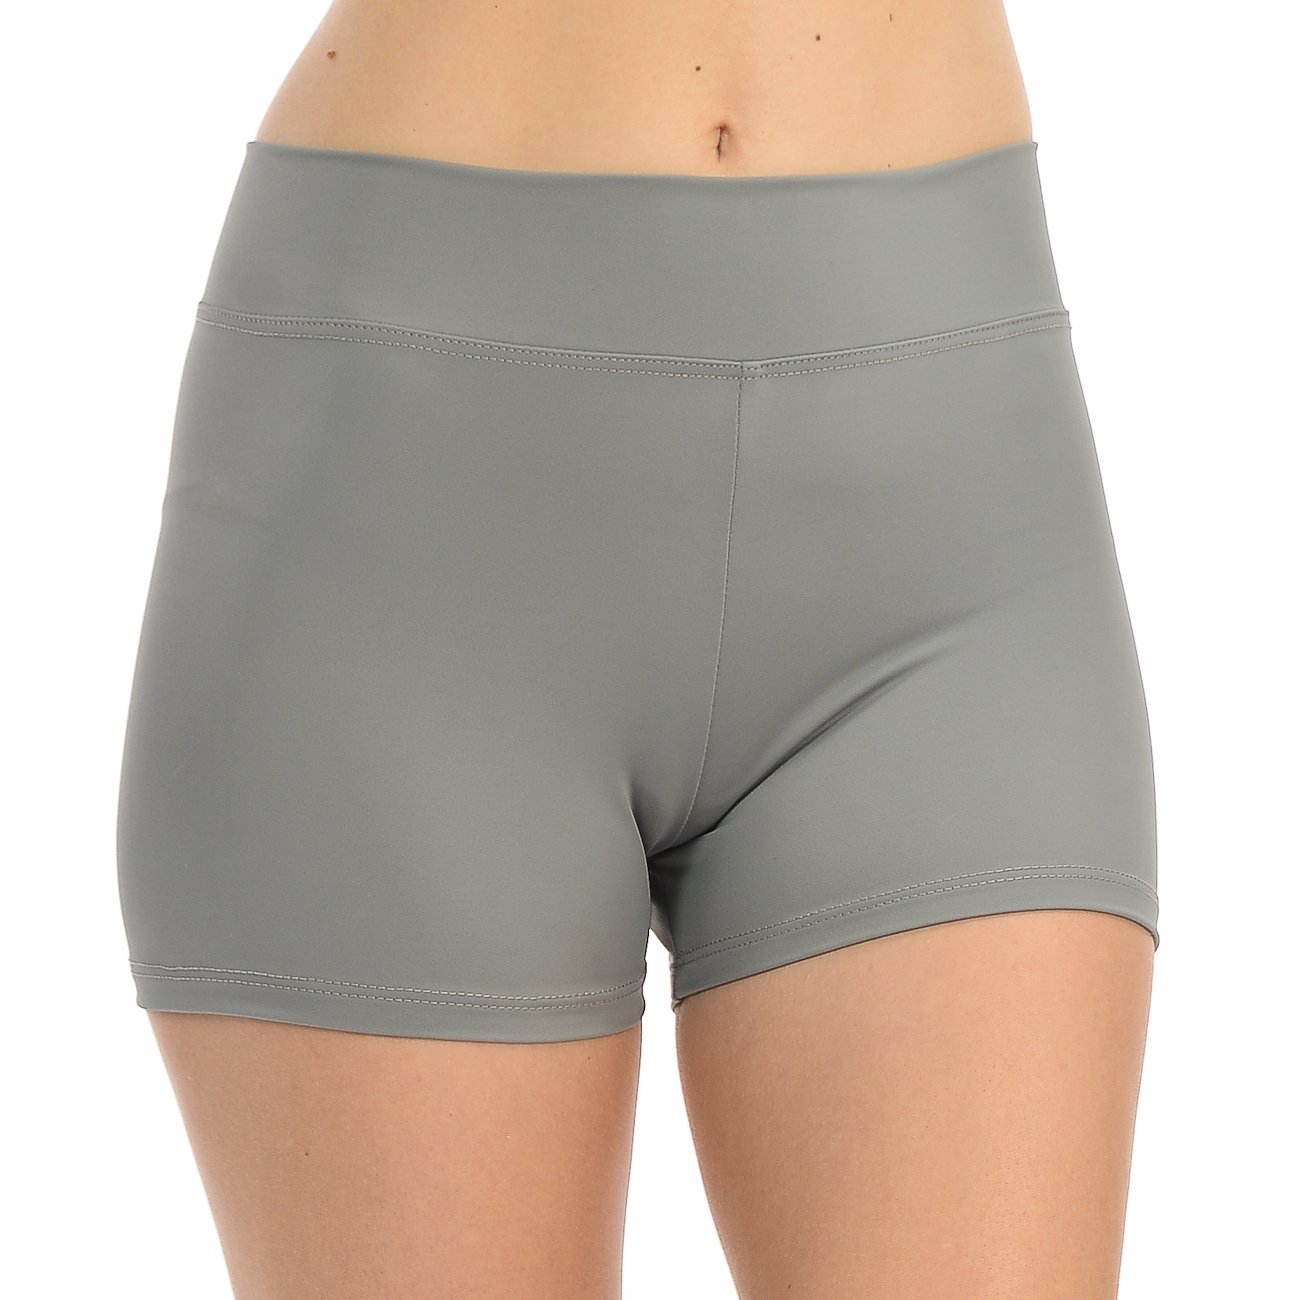 ANZA Girls Active Wear Dance Booty Shorts-Grey,Small(5/6) by Anza Collection